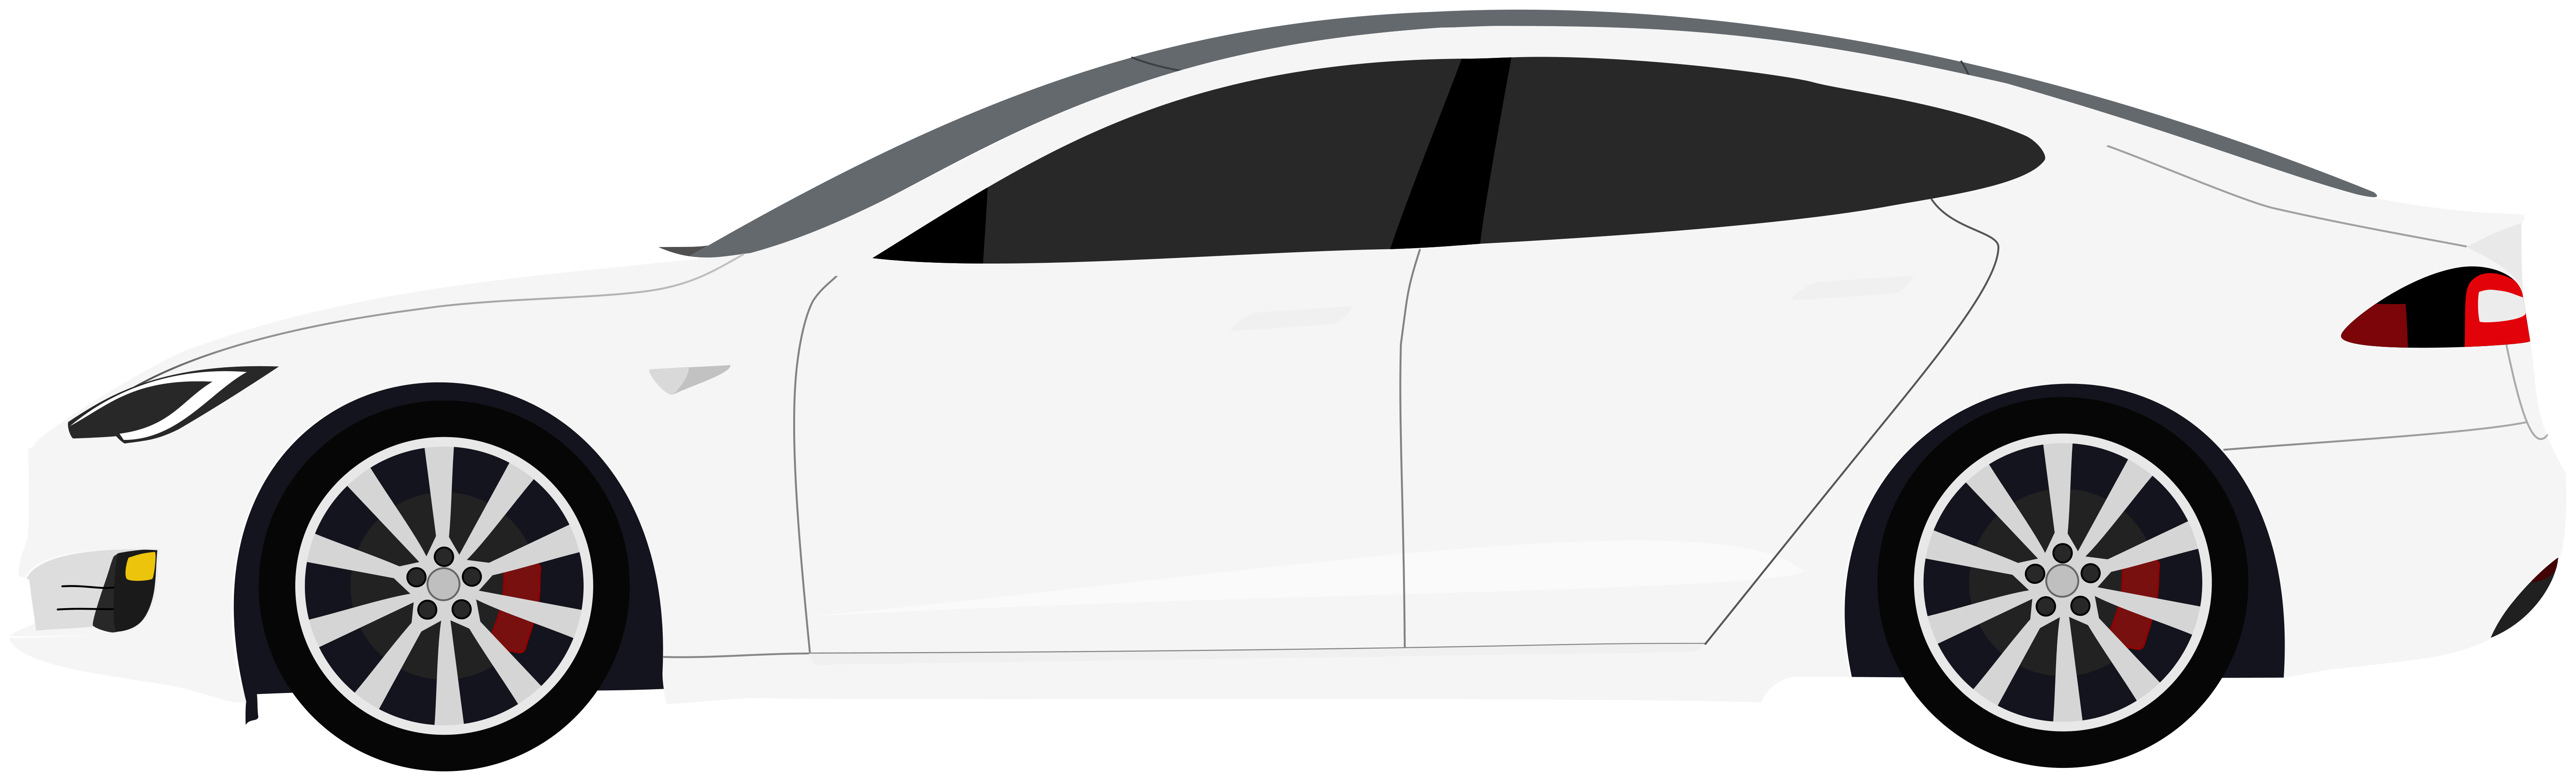 Car design clipart png black and white Fan-made Tesla Cars & Supercharger Cliparts - Album on Imgur png black and white